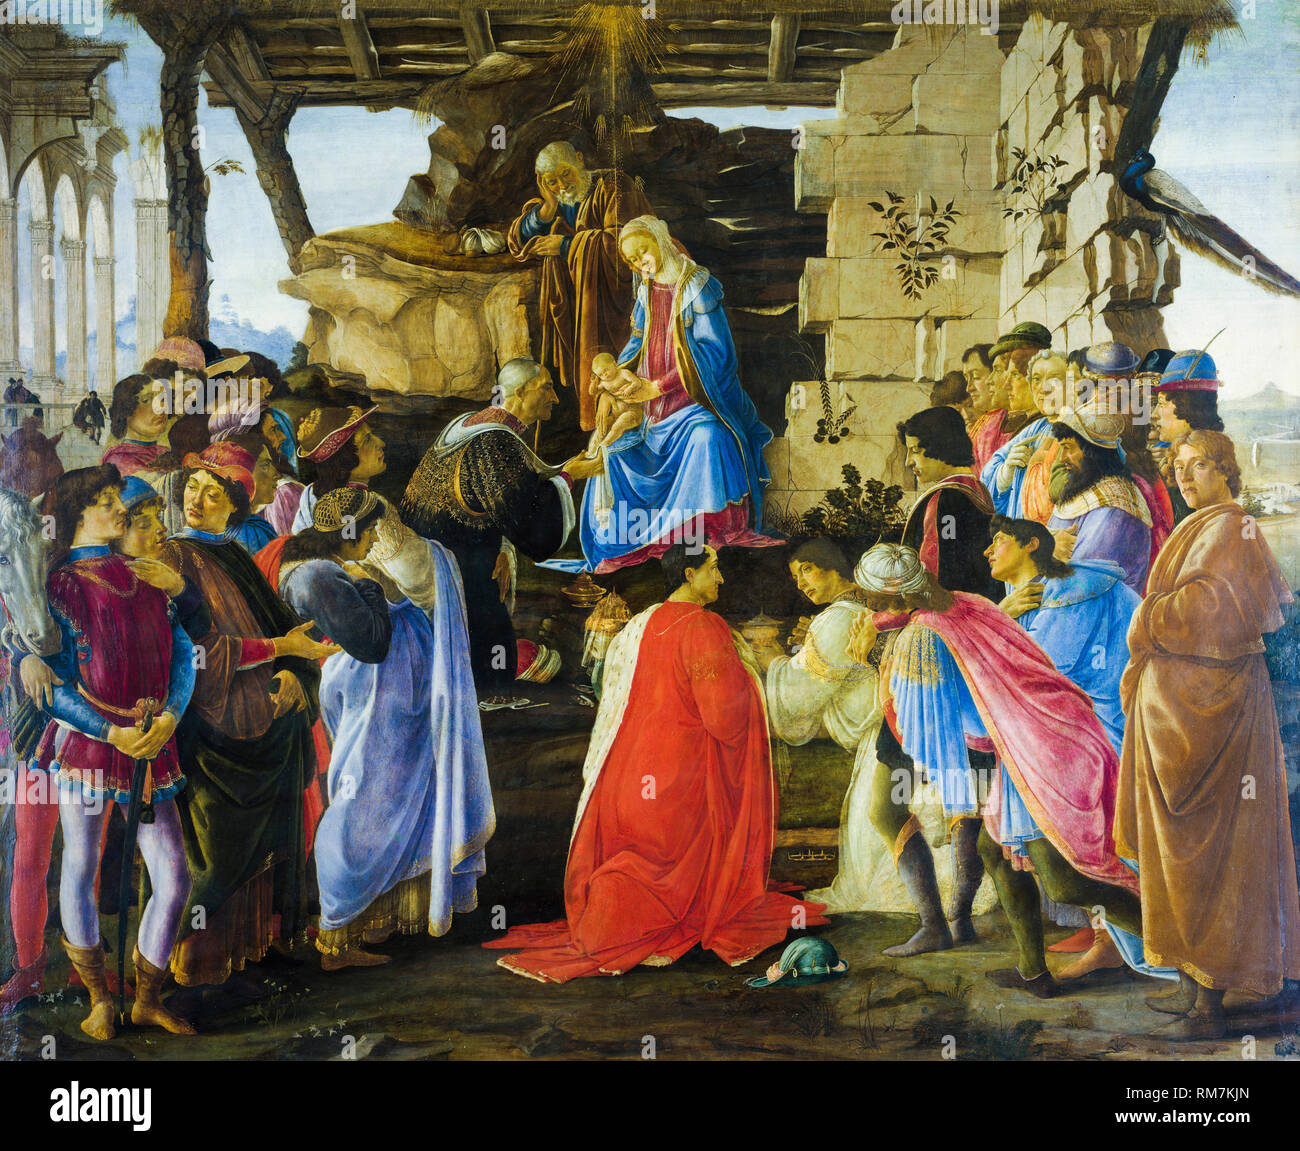 Adoration of the Magi, painting by Sandro Botticelli, c.1475 - Stock Image